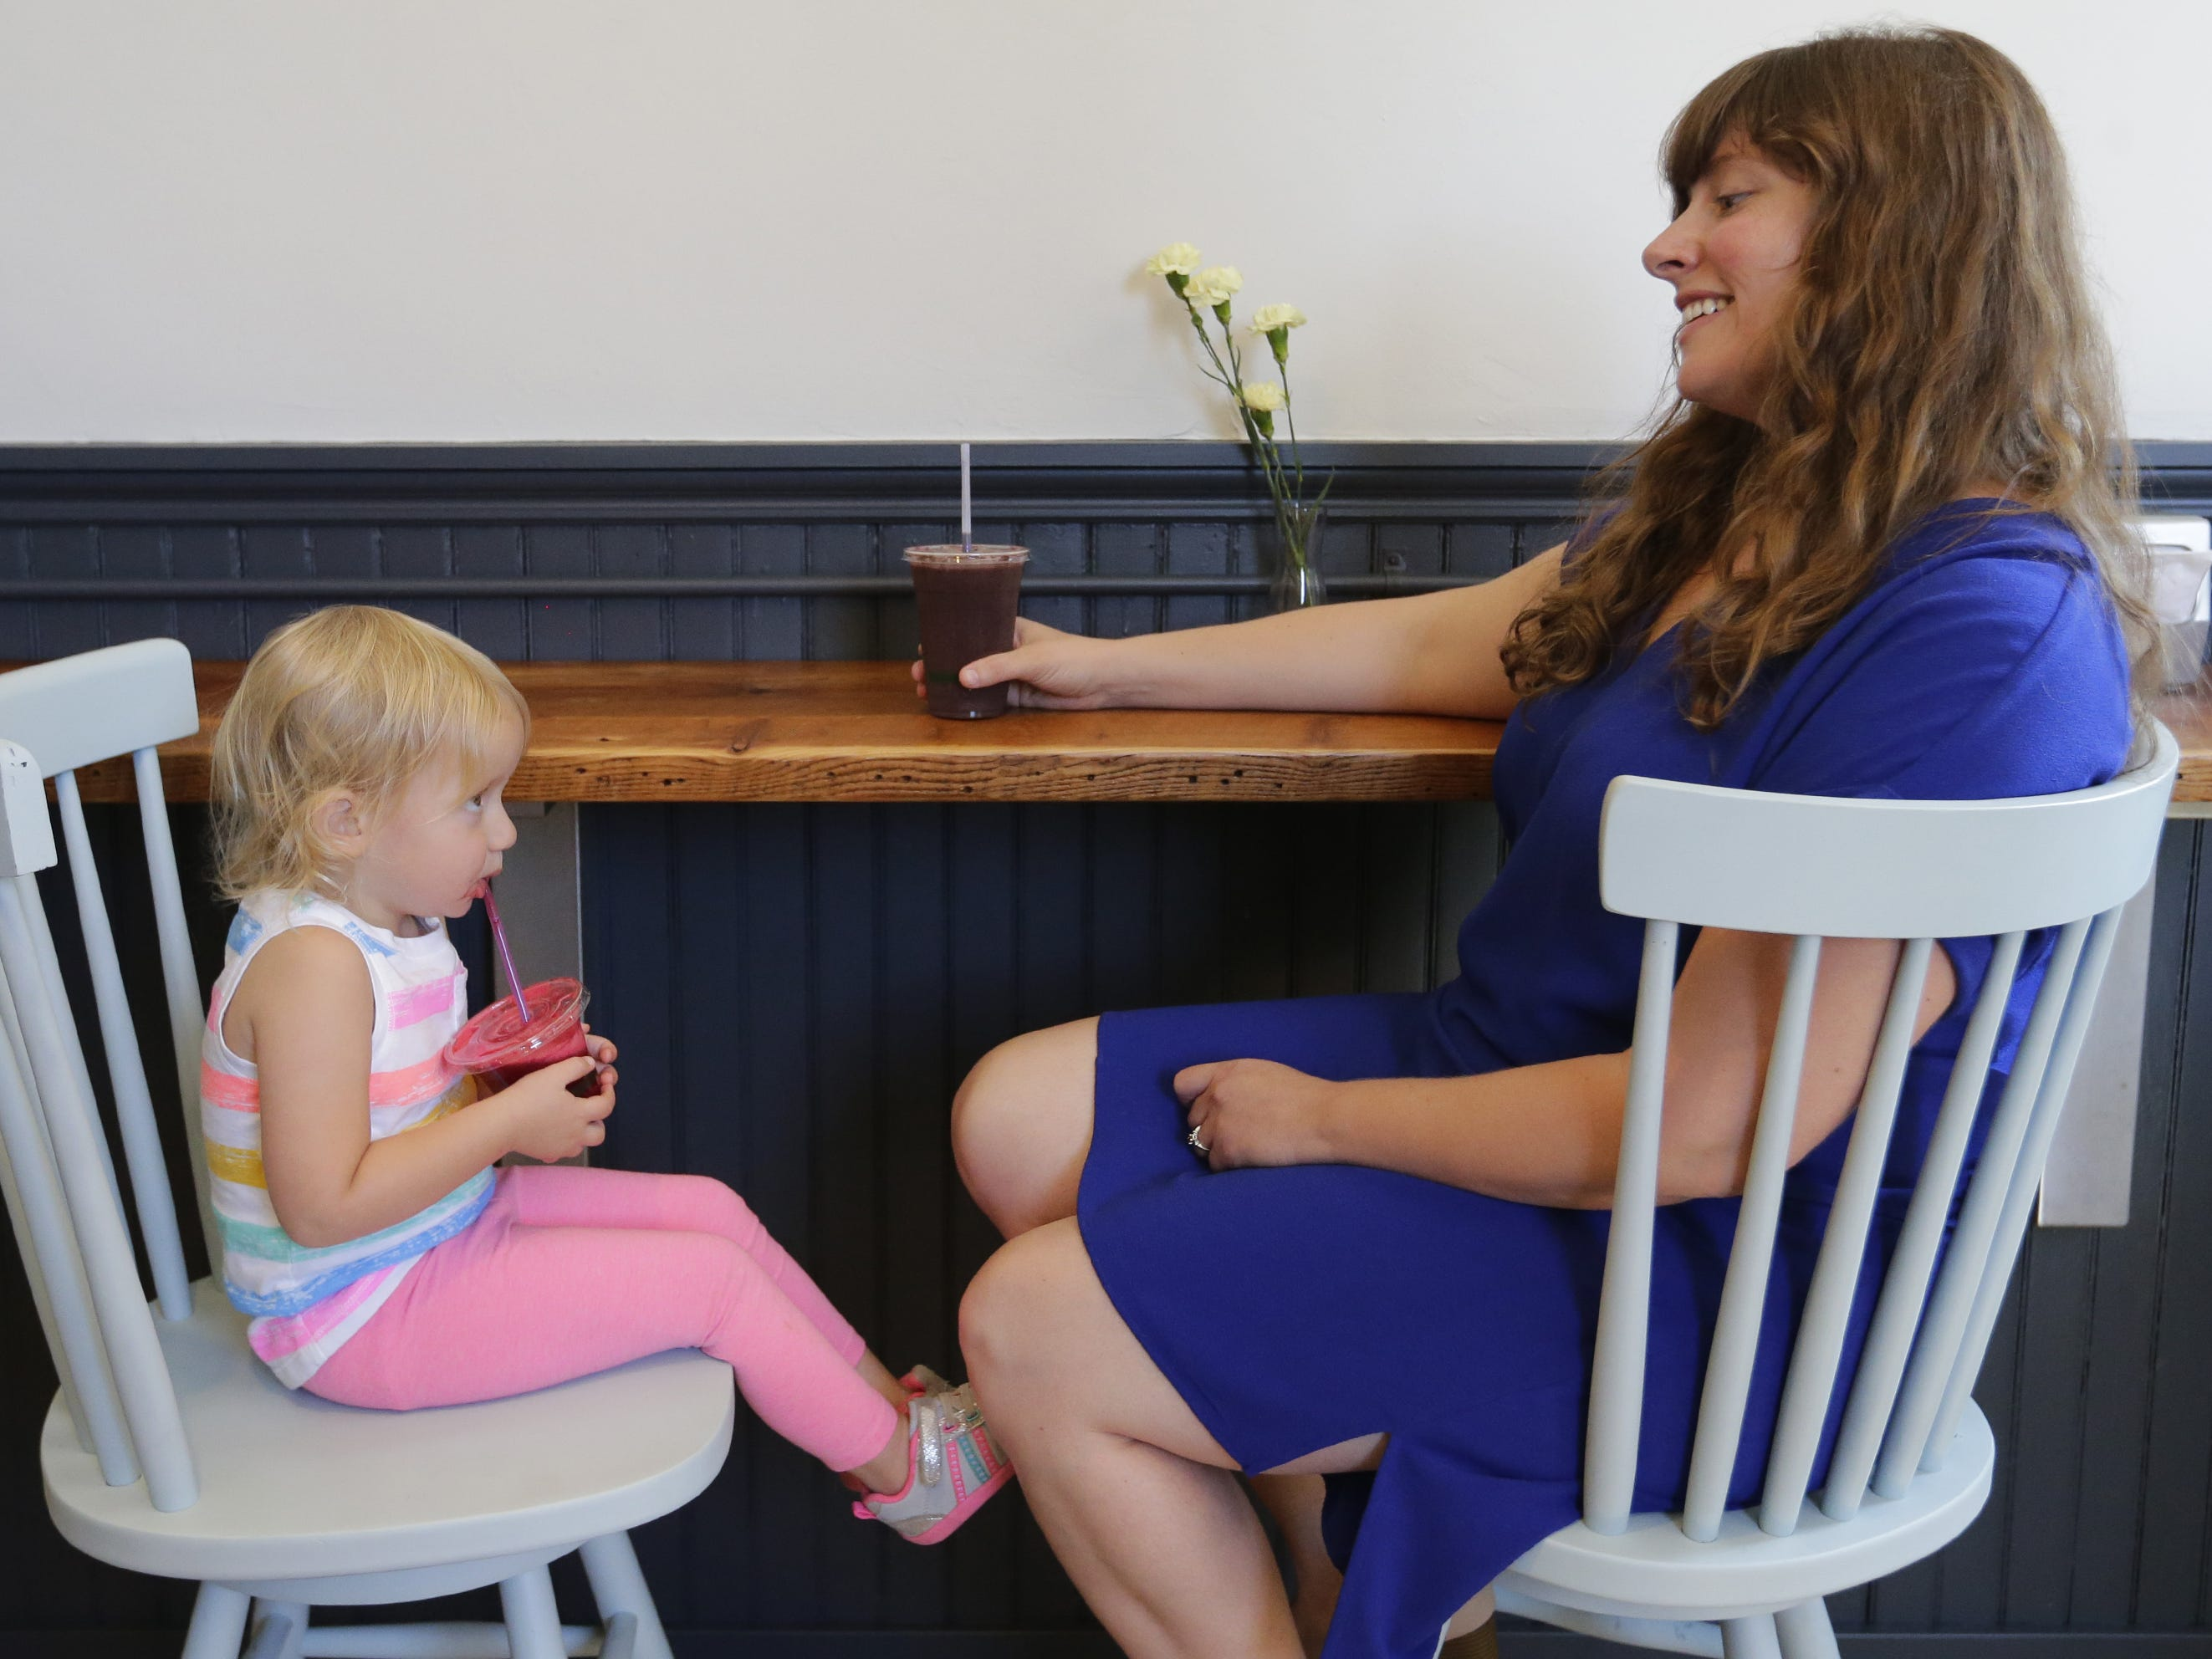 Megan Bartelt has a juice drink with her 2-year-old daughter, Iris Thede, on Tuesday, Sept. 11, 2018, at Carrot & Kale in Oshkosh. Bartelt opened the organic juice bar and cafe this summer at 110 Algoma Blvd.